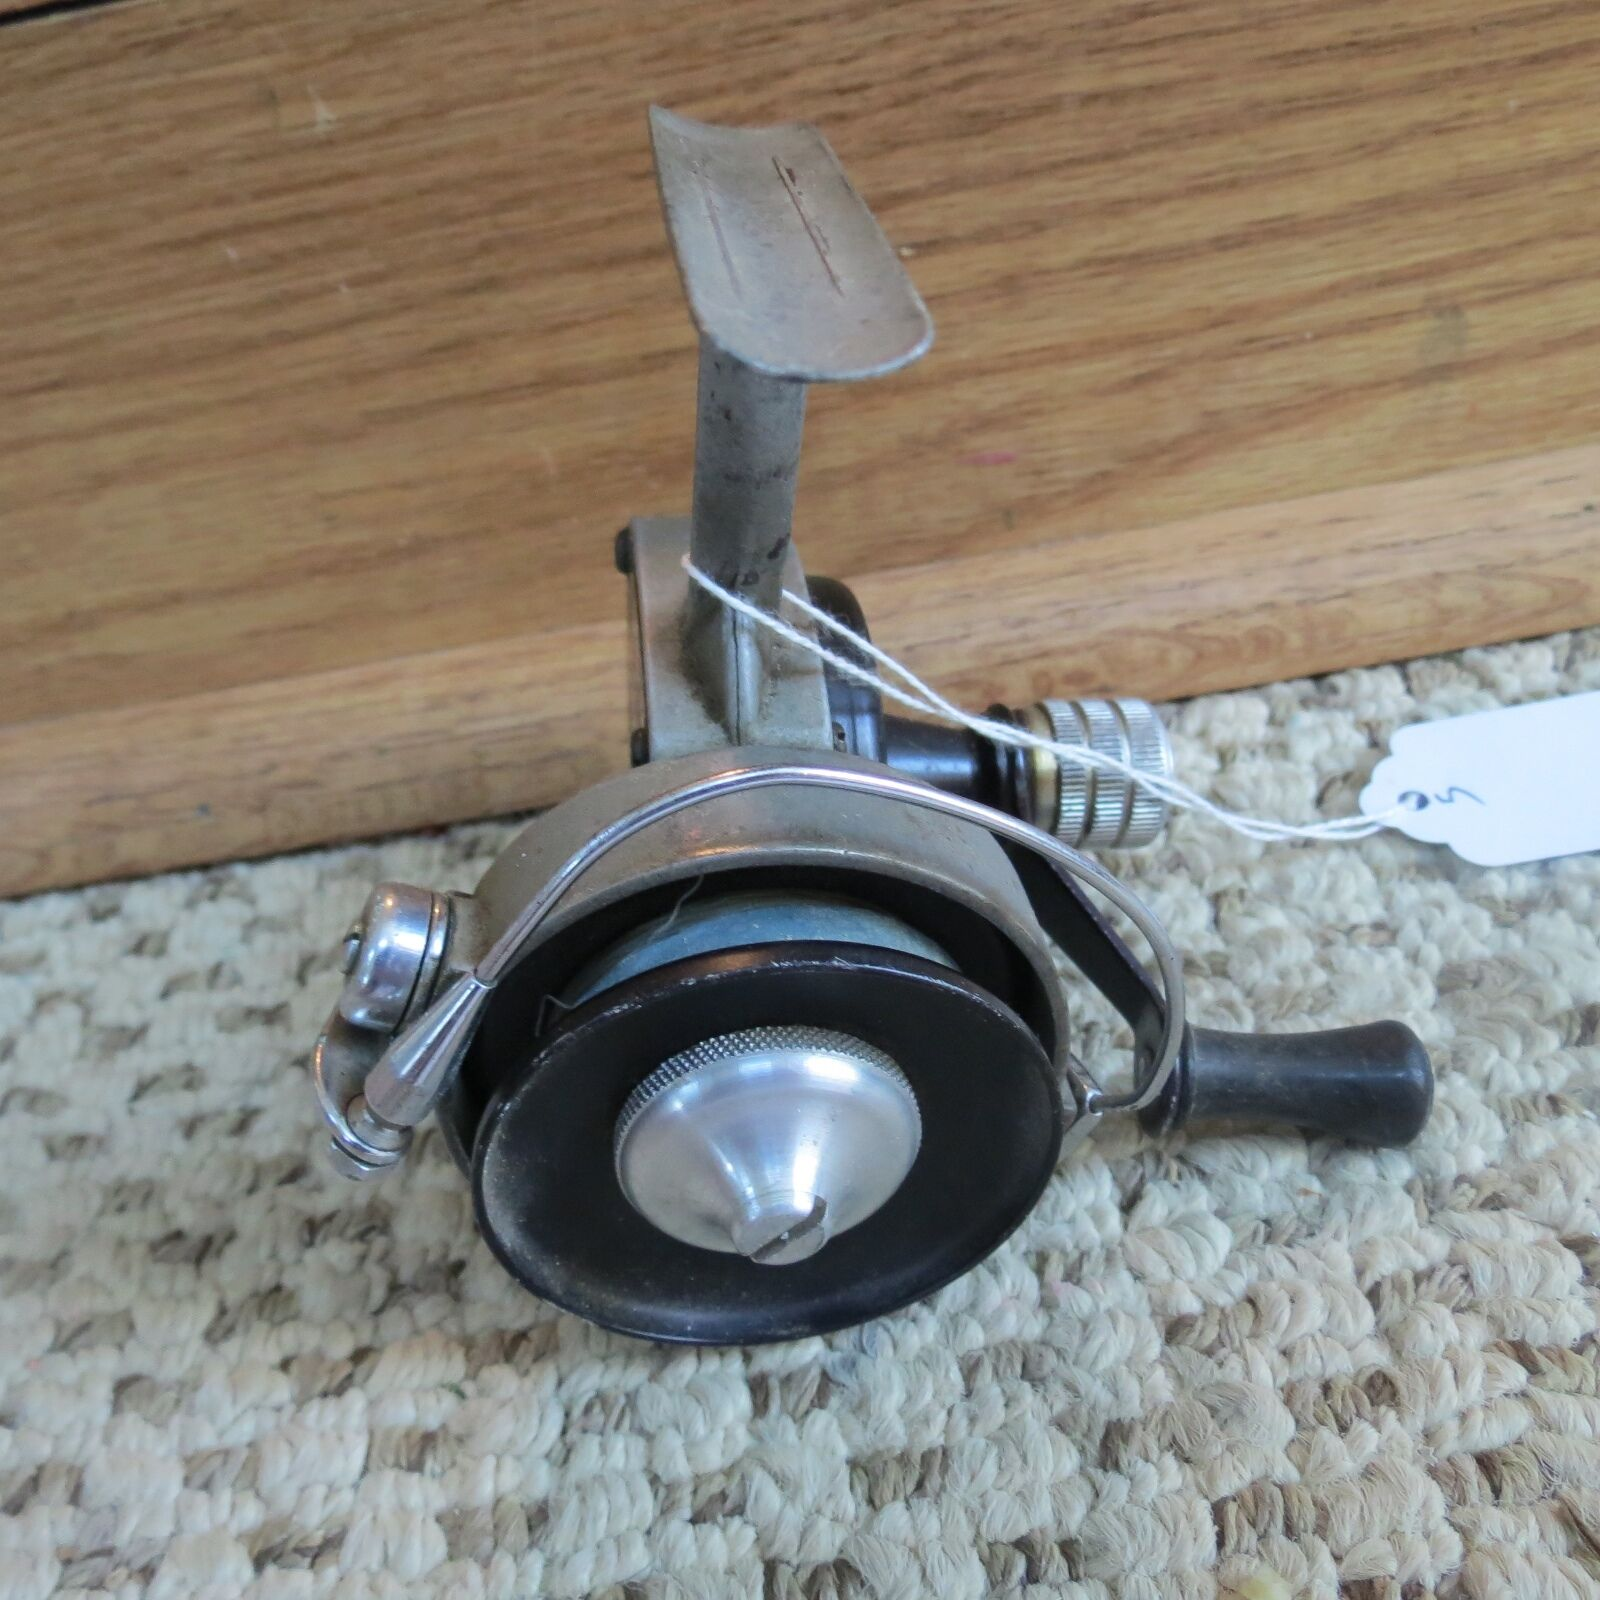 Bronson Spinit mod. 400 c. 1950 from Bronson Mich. fishing reel (lot)